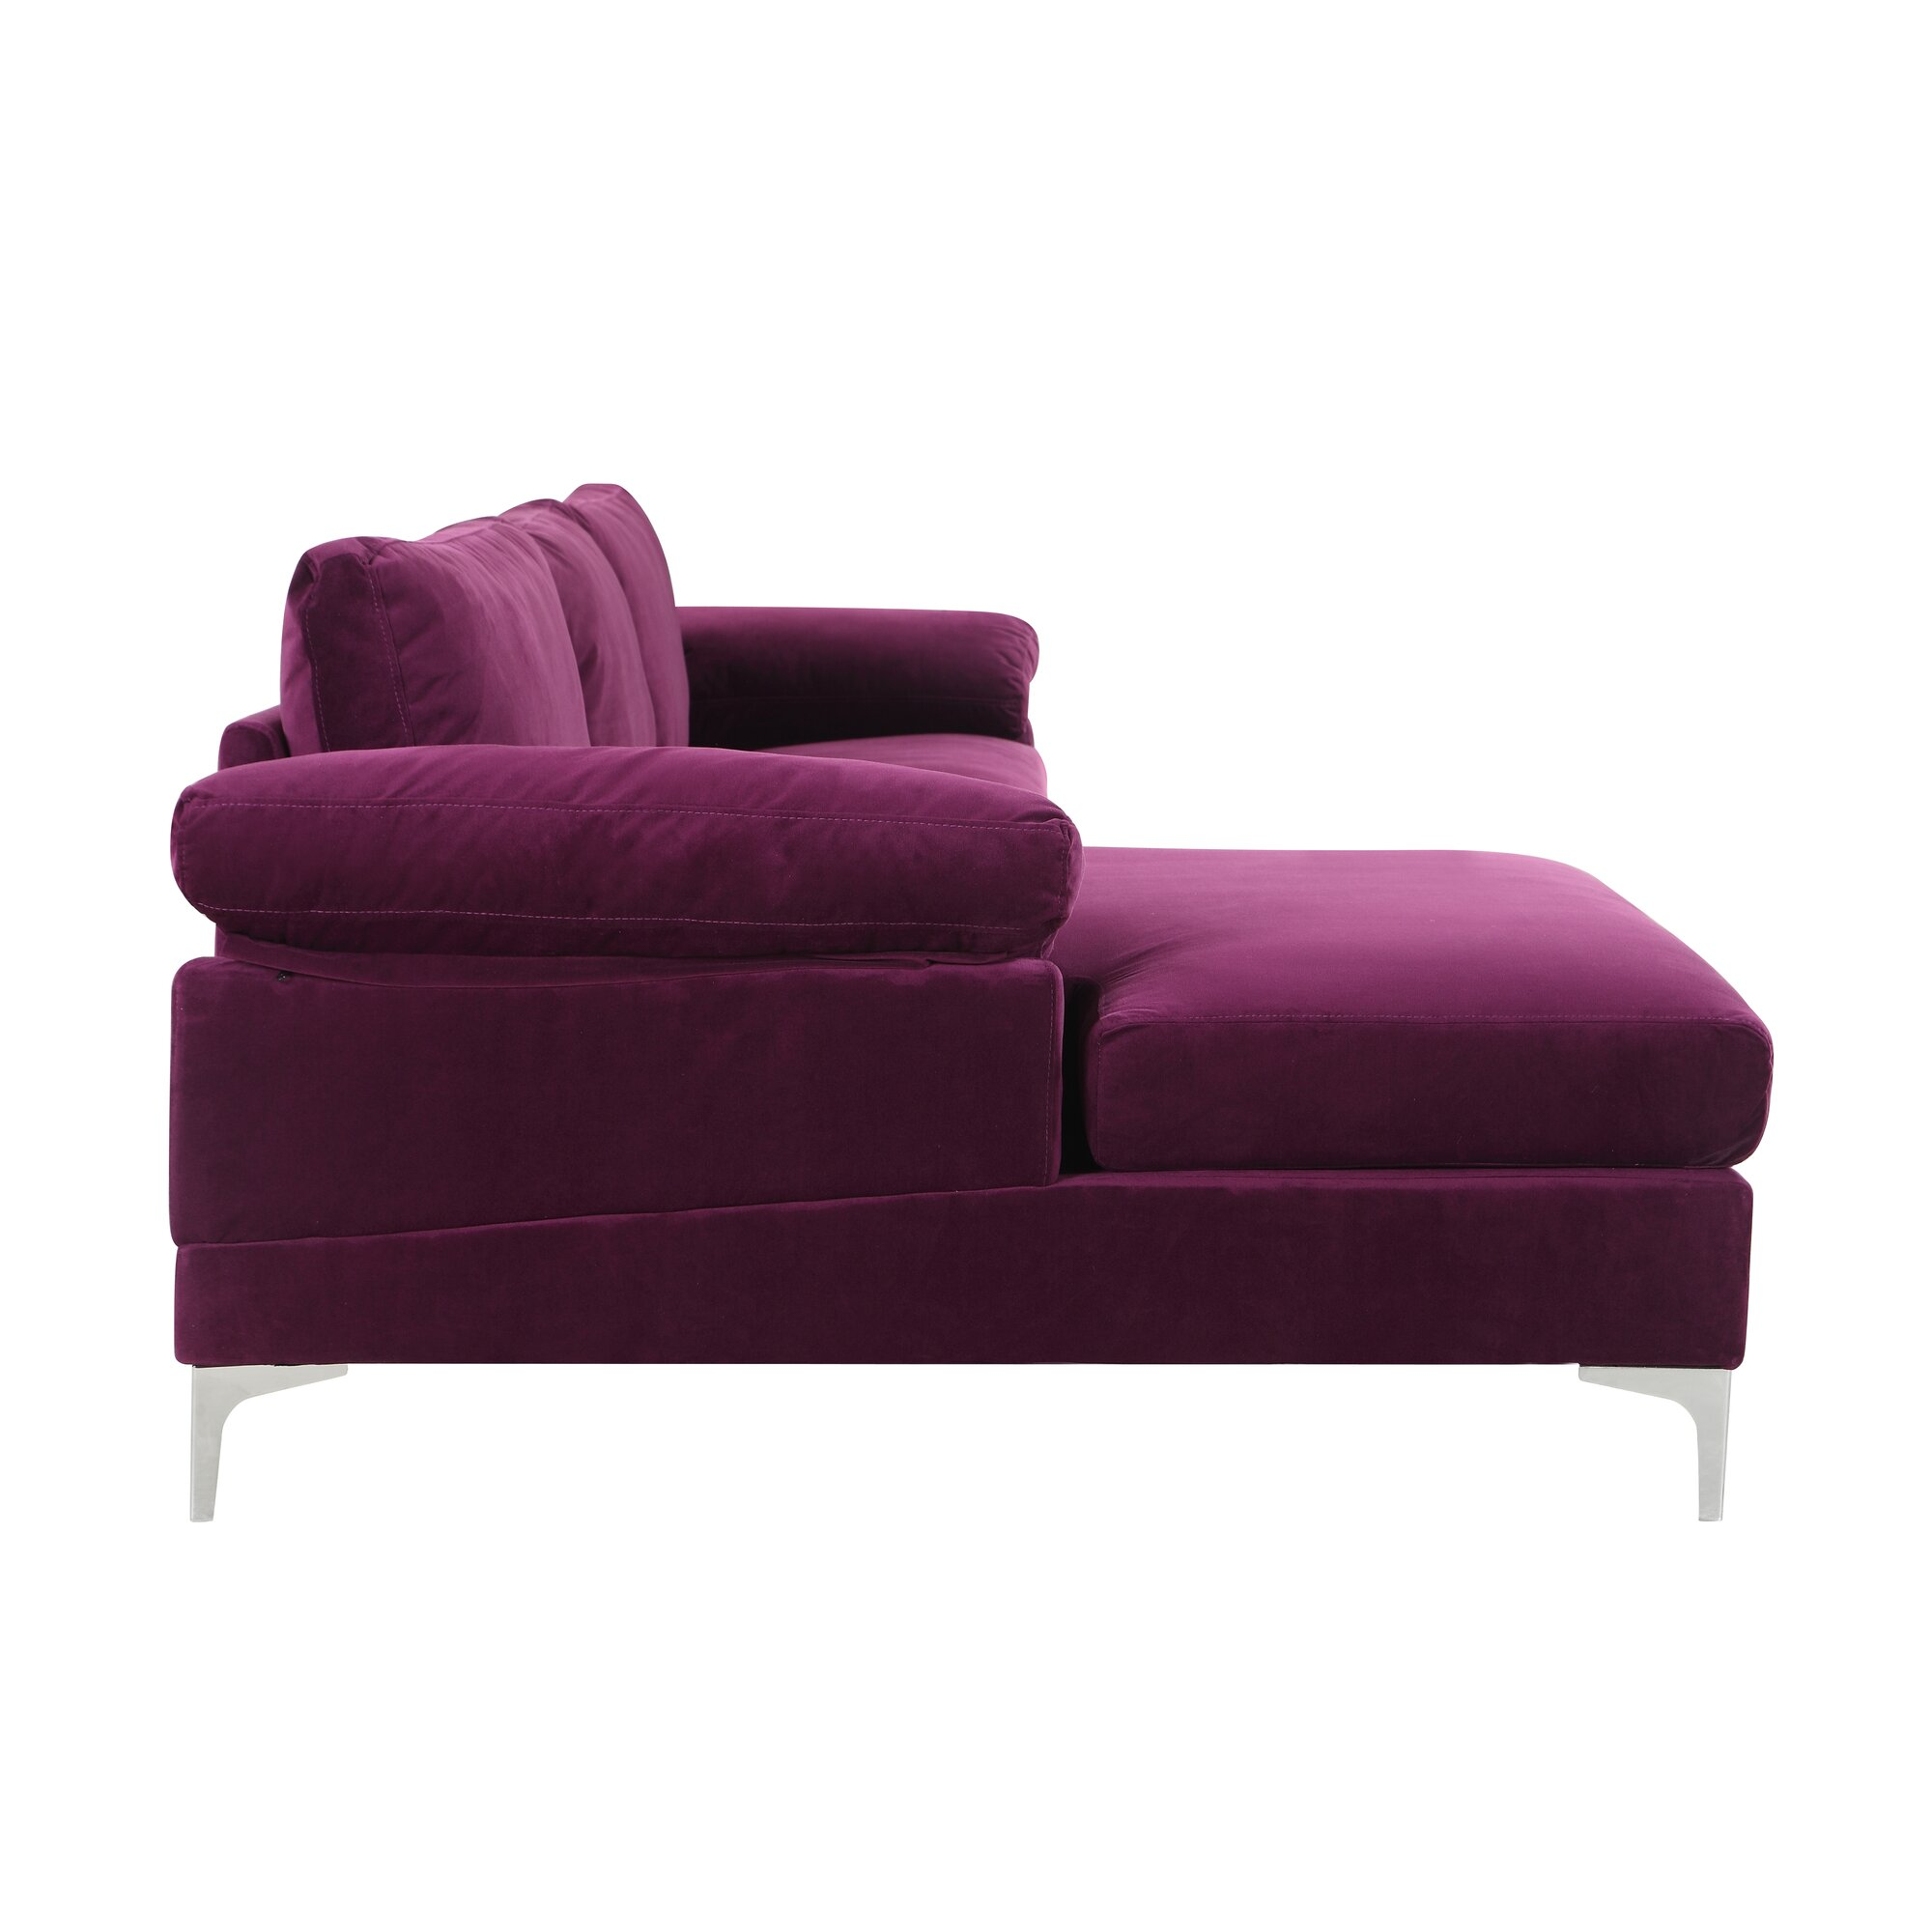 Kailey Modern Velvet Fabric Sectional Sofa with Chaise Lounge